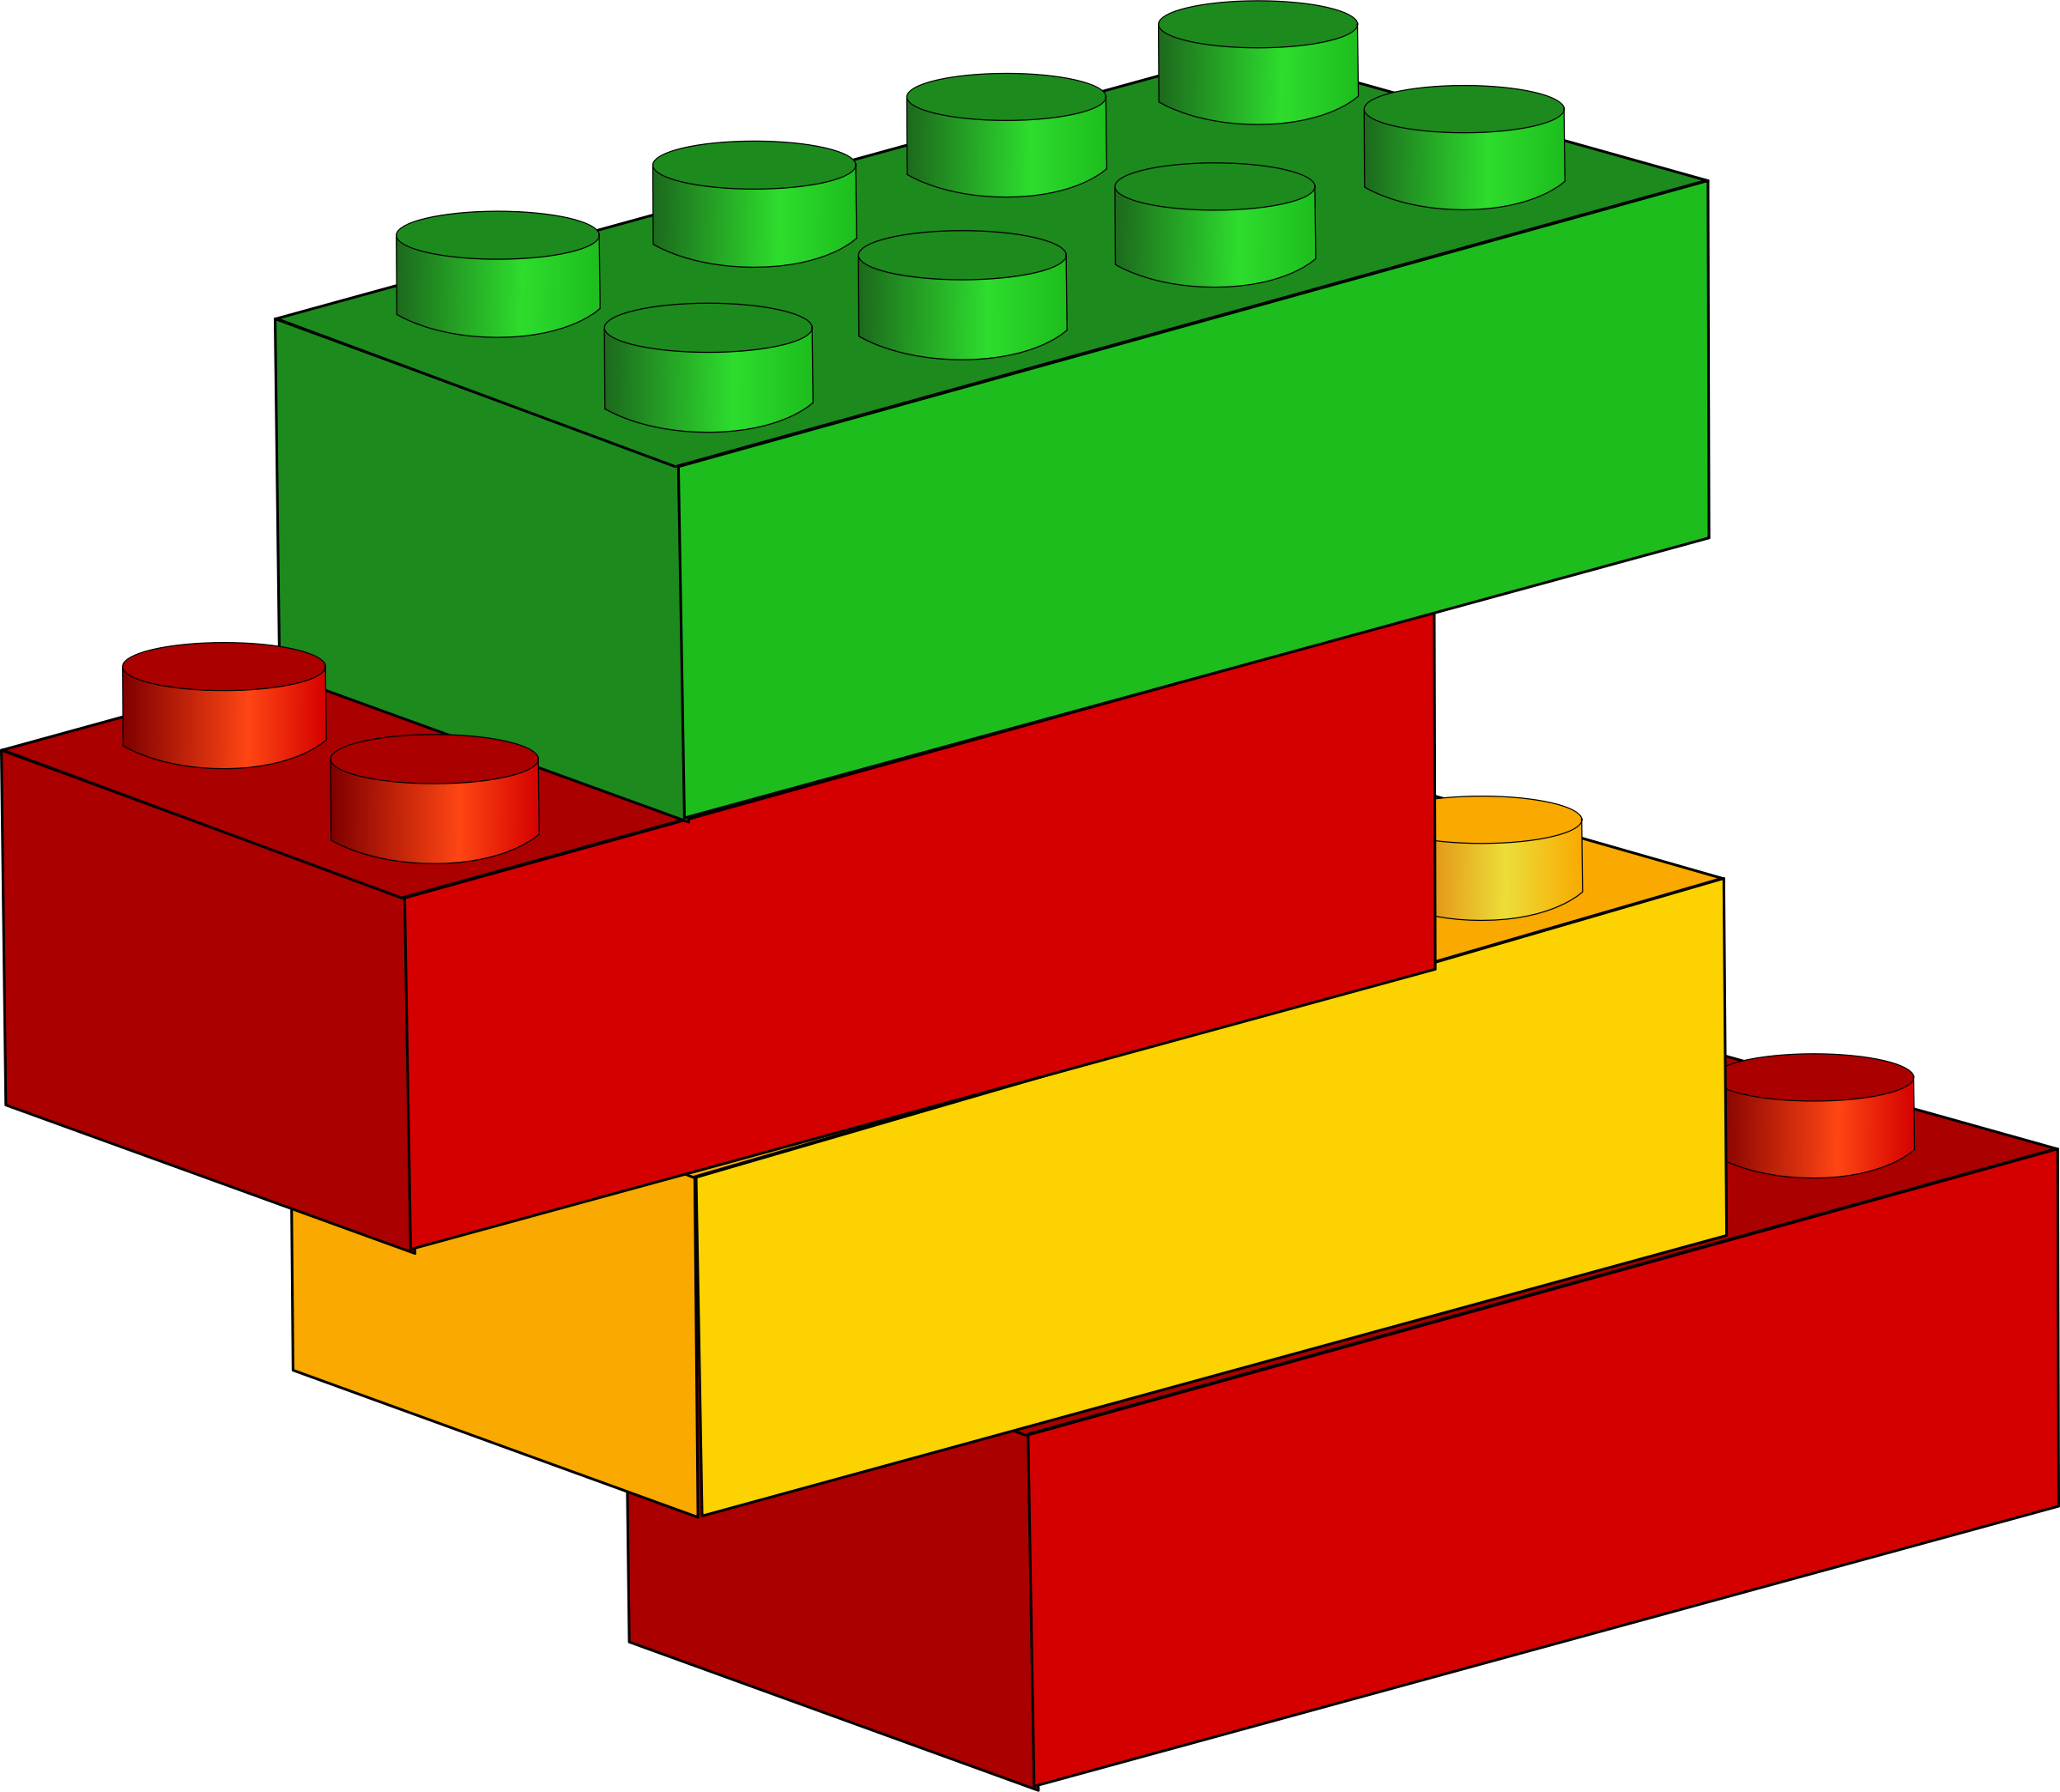 image freeuse download Legos clipart green. Lego big free on.